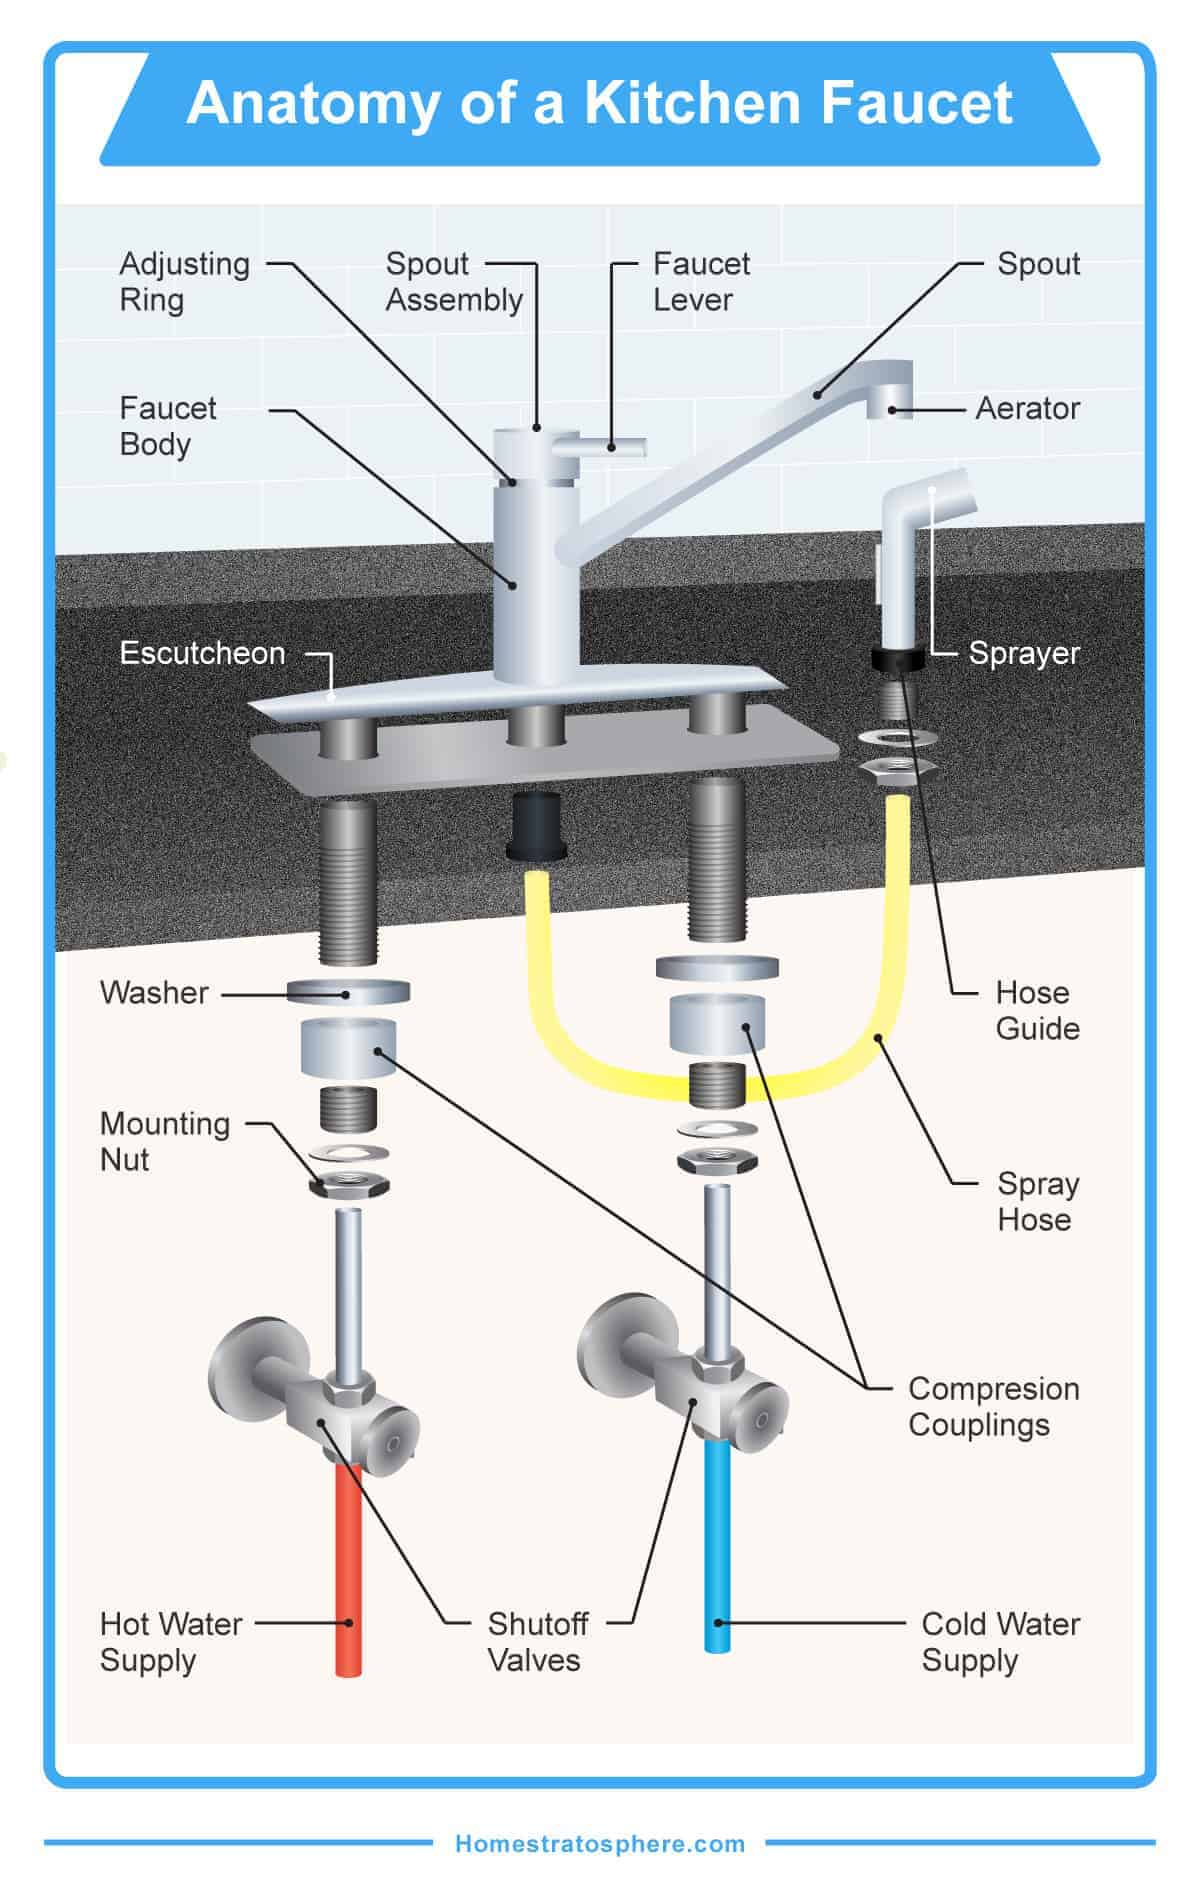 Diagram showing the various parts of a kitchen faucet